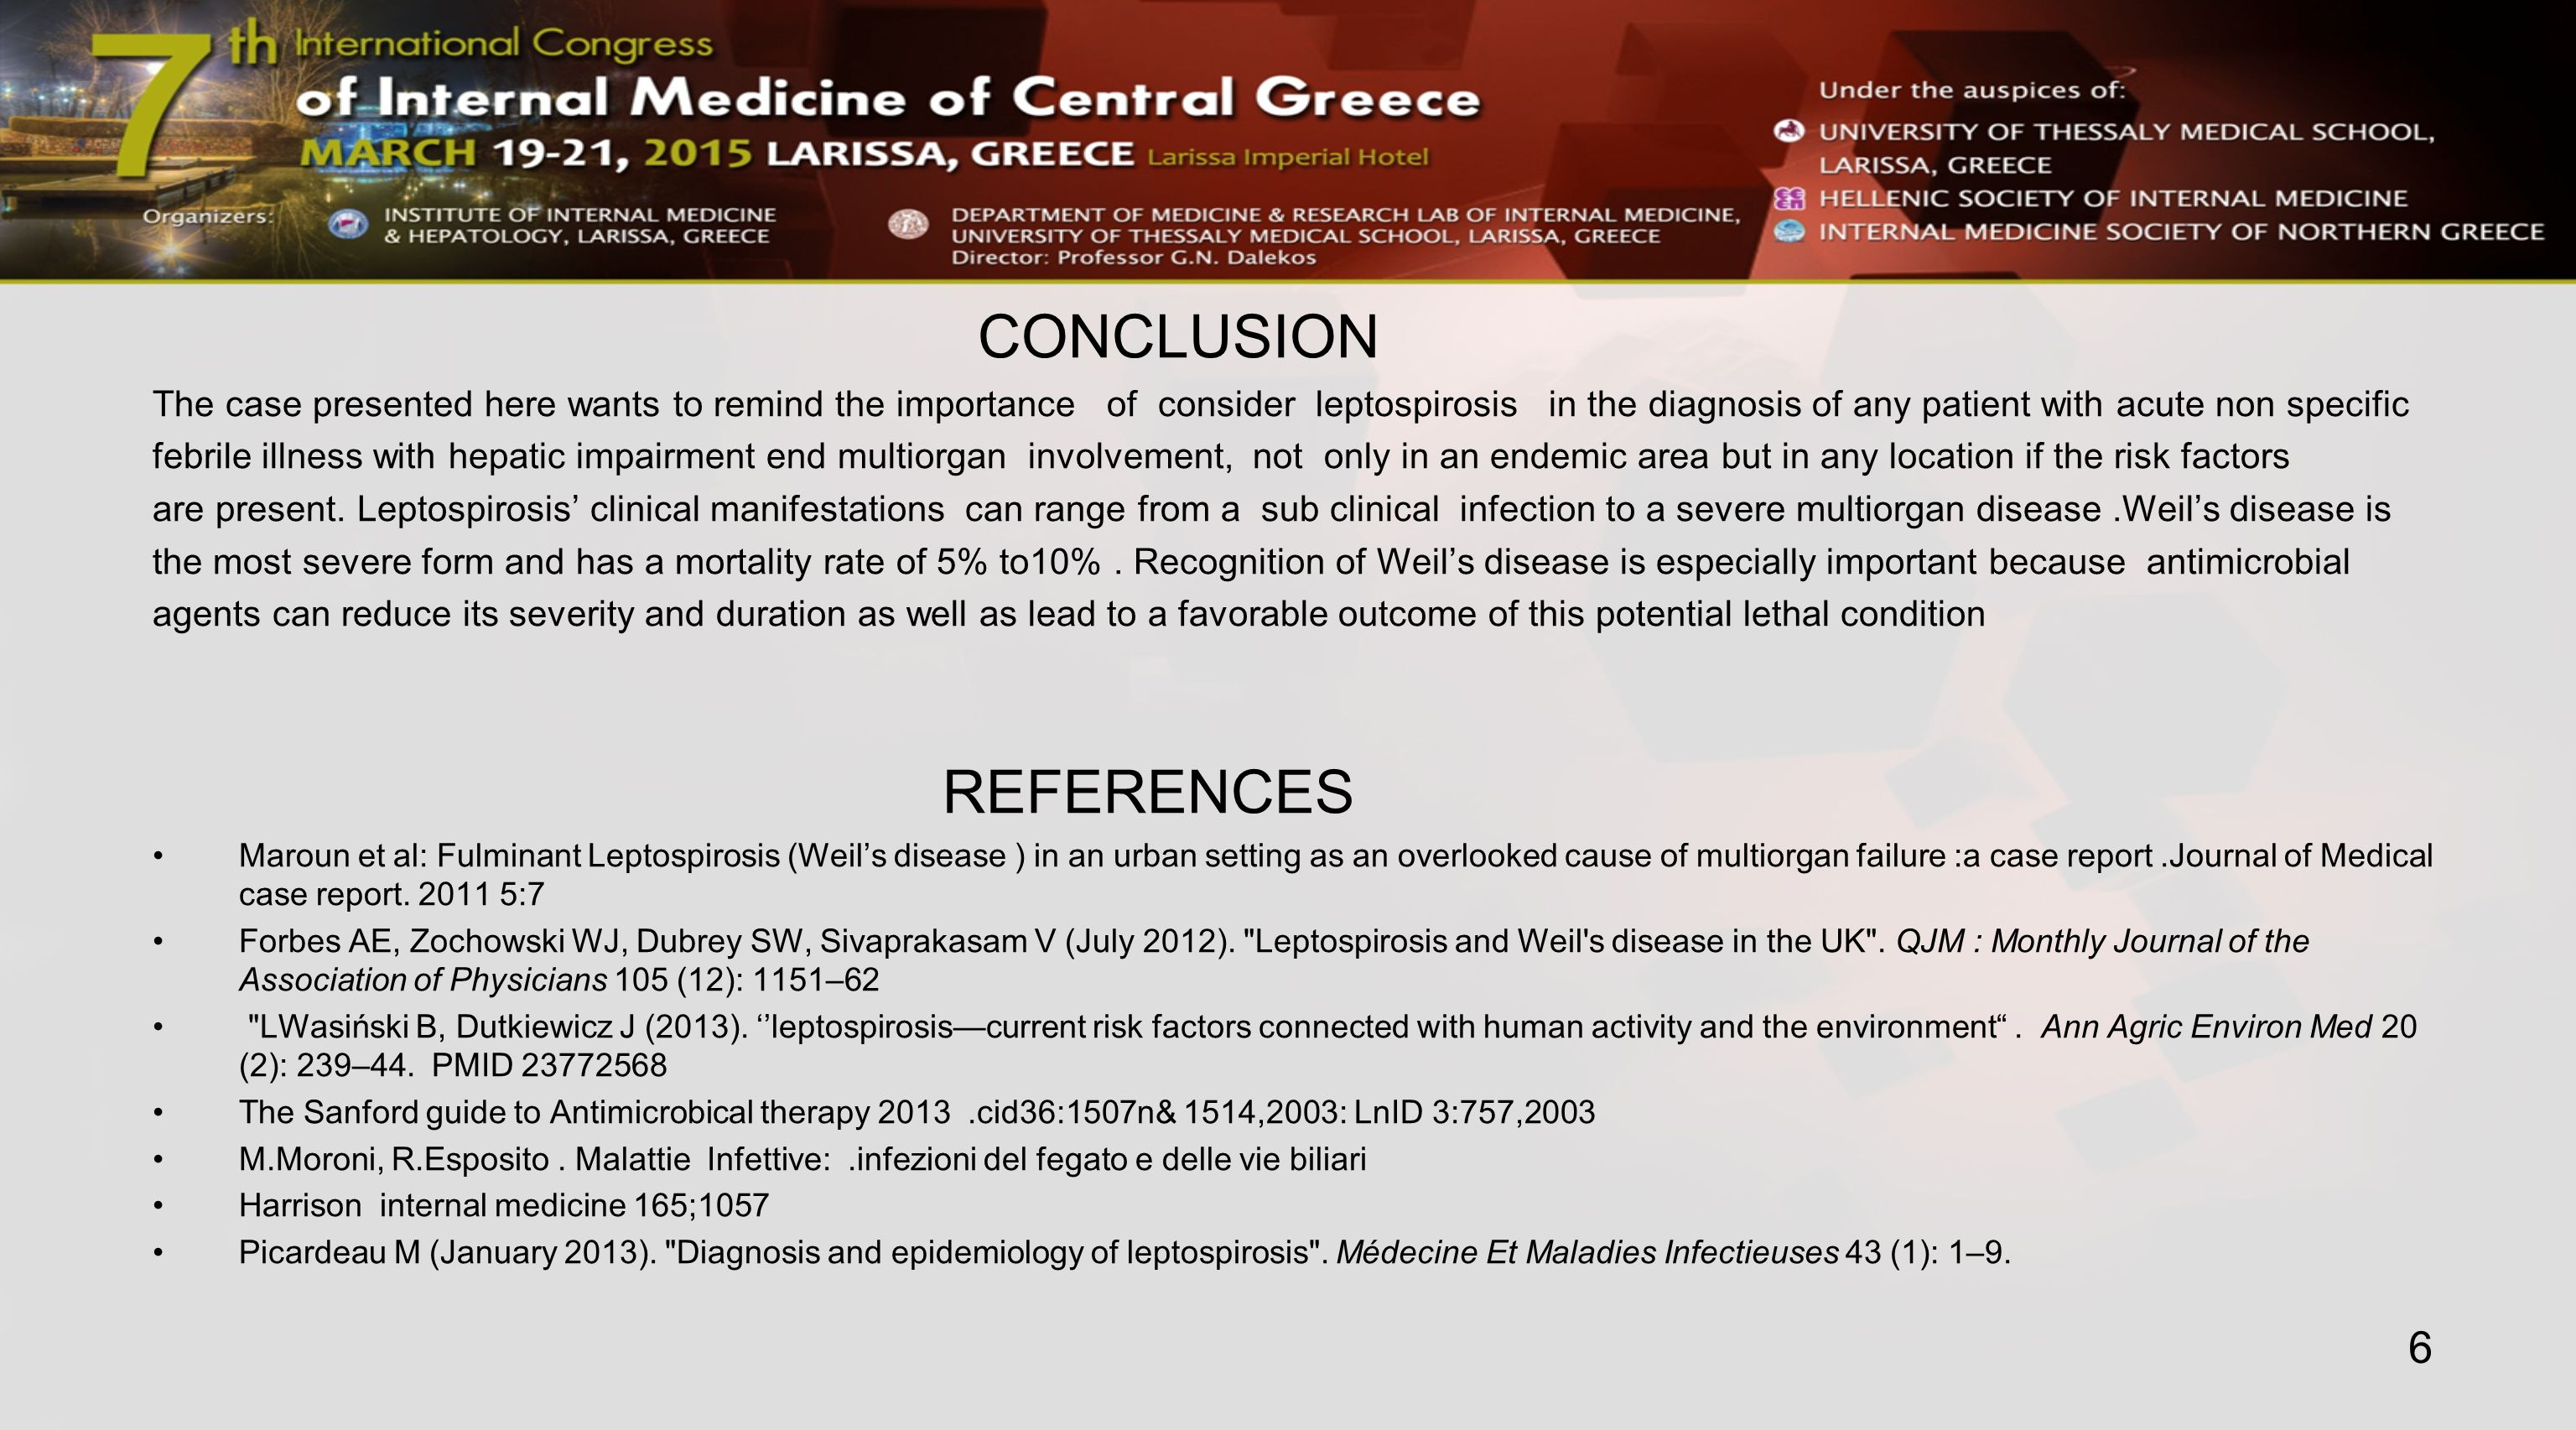 CONCLUSION The case presented here wants to remind the importance of consider leptospirosis in the diagnosis of any patient with acute non specific febrile illness with hepatic impairment end multiorgan involvement, not only in an endemic area but in any location if the risk factors are present.